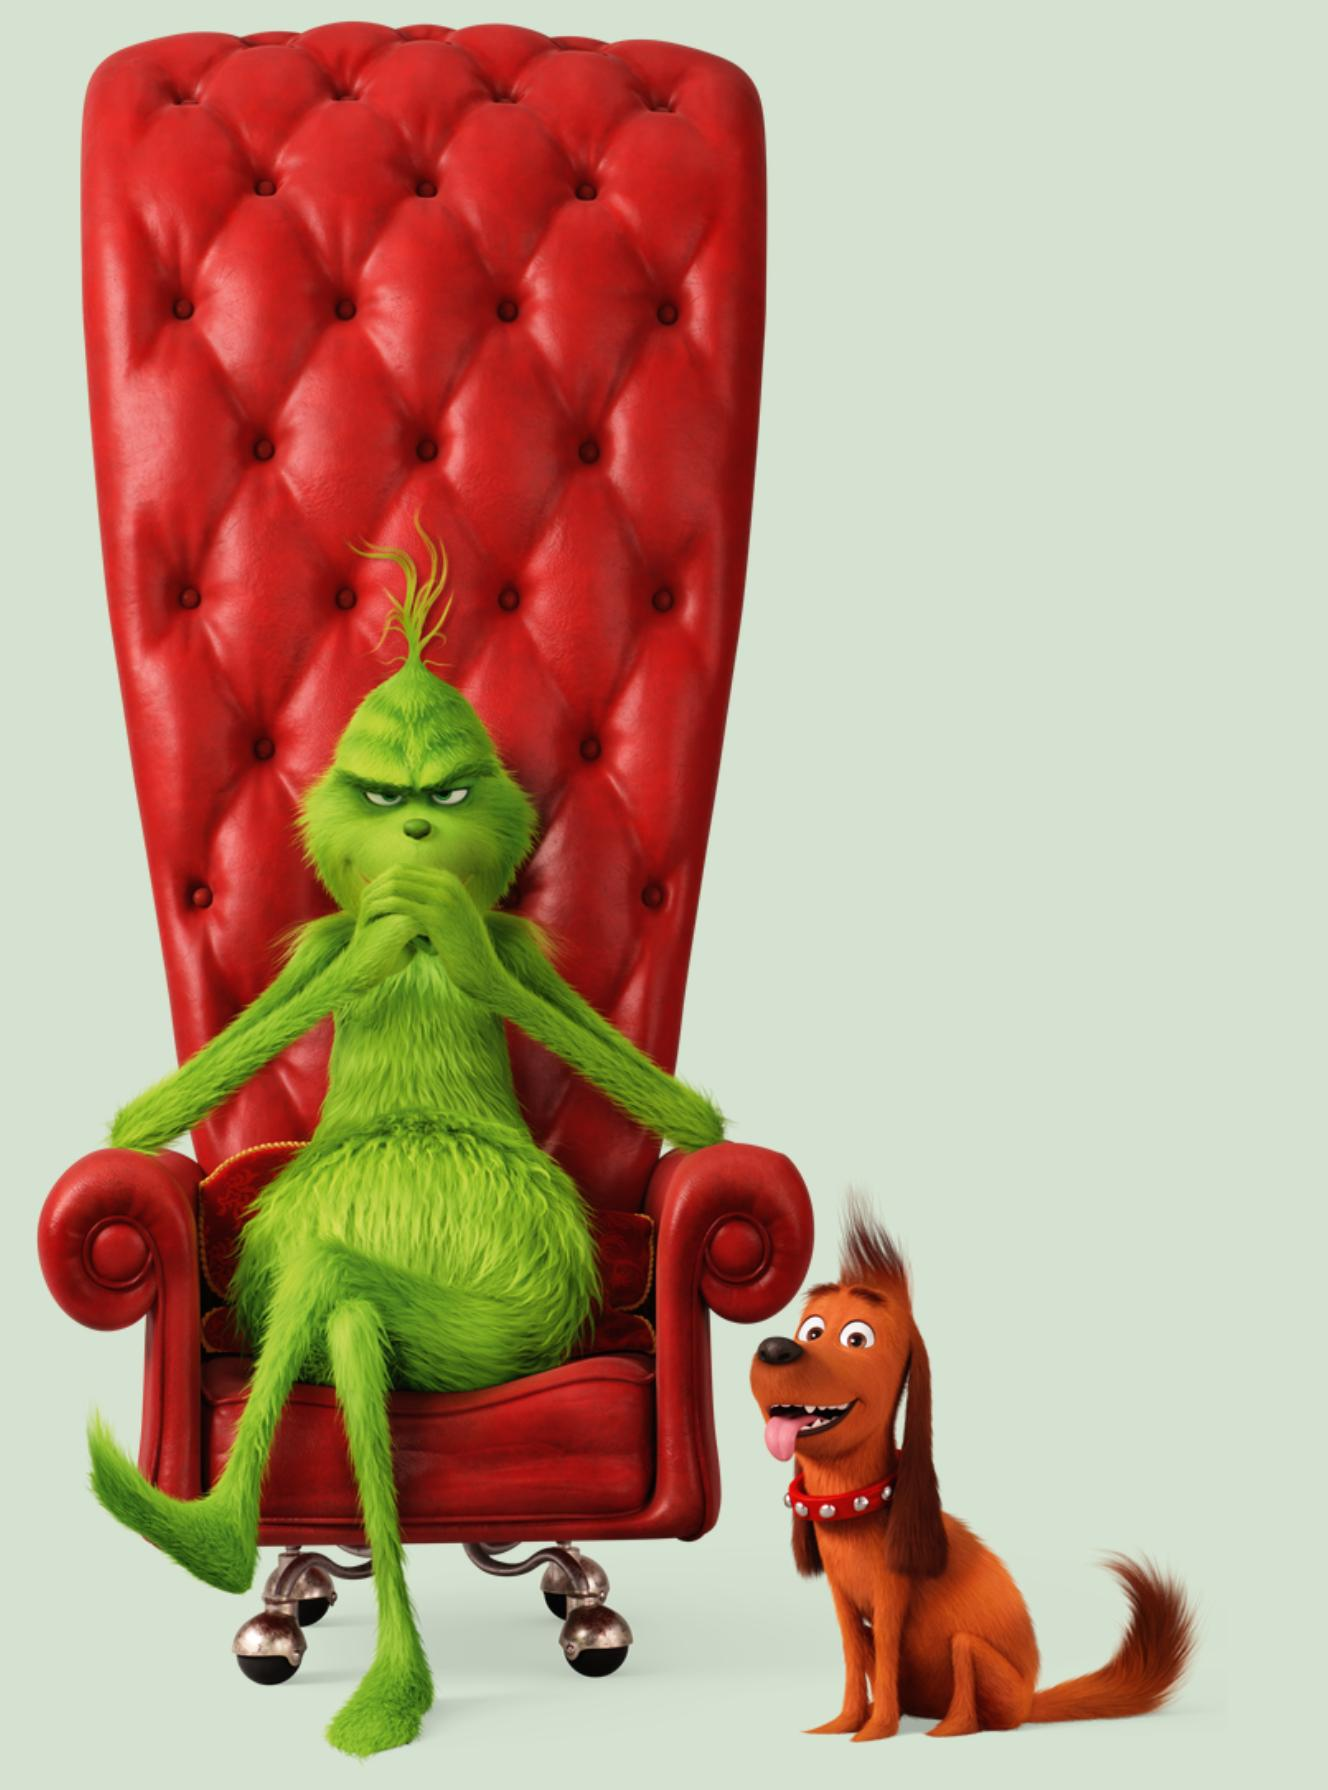 The Grinch Wallpapers Lock Screen HD for Android   APK Download 1328x1790